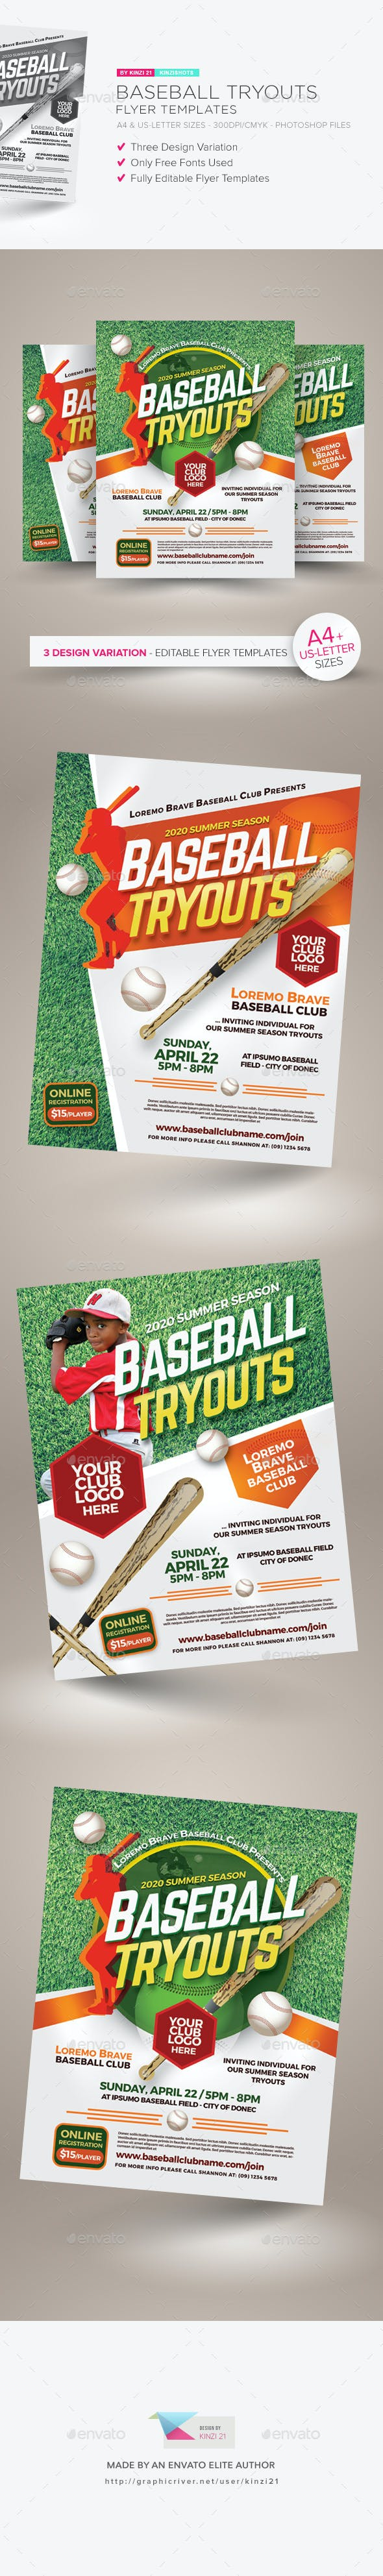 baseball tryouts flyer templates by kinzishots graphicriver